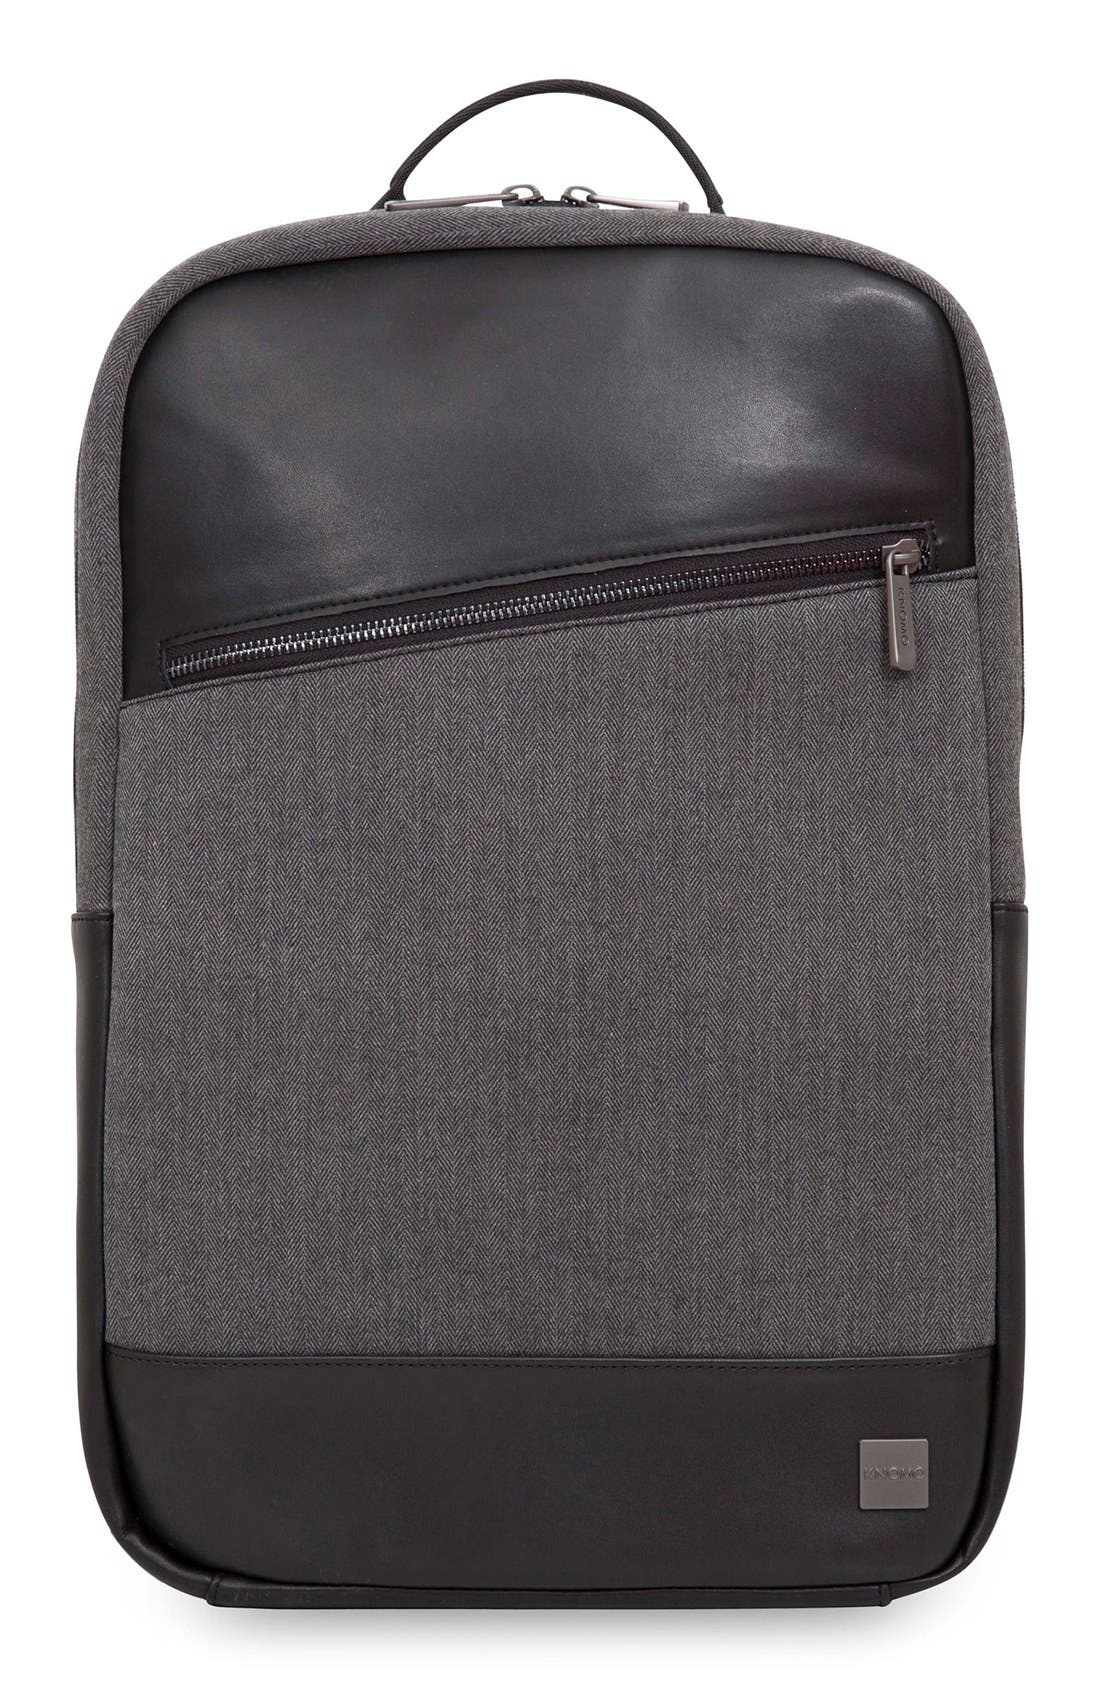 Holborn Southampton Backpack,                         Main,                         color, Grey